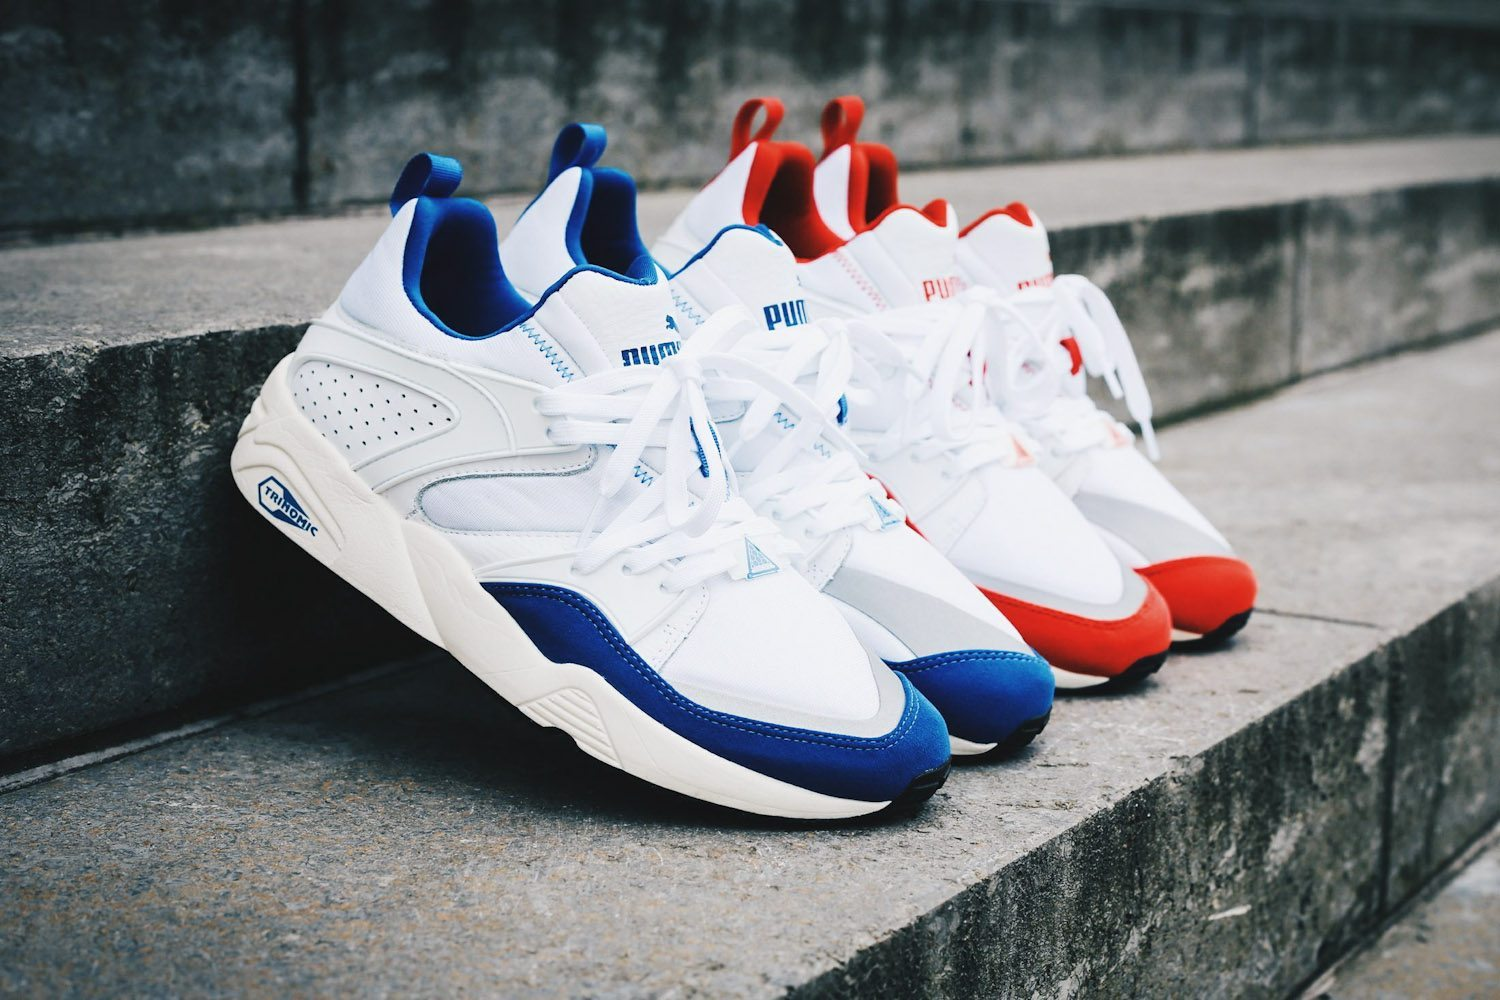 PUMA Primary Pack Part II 2